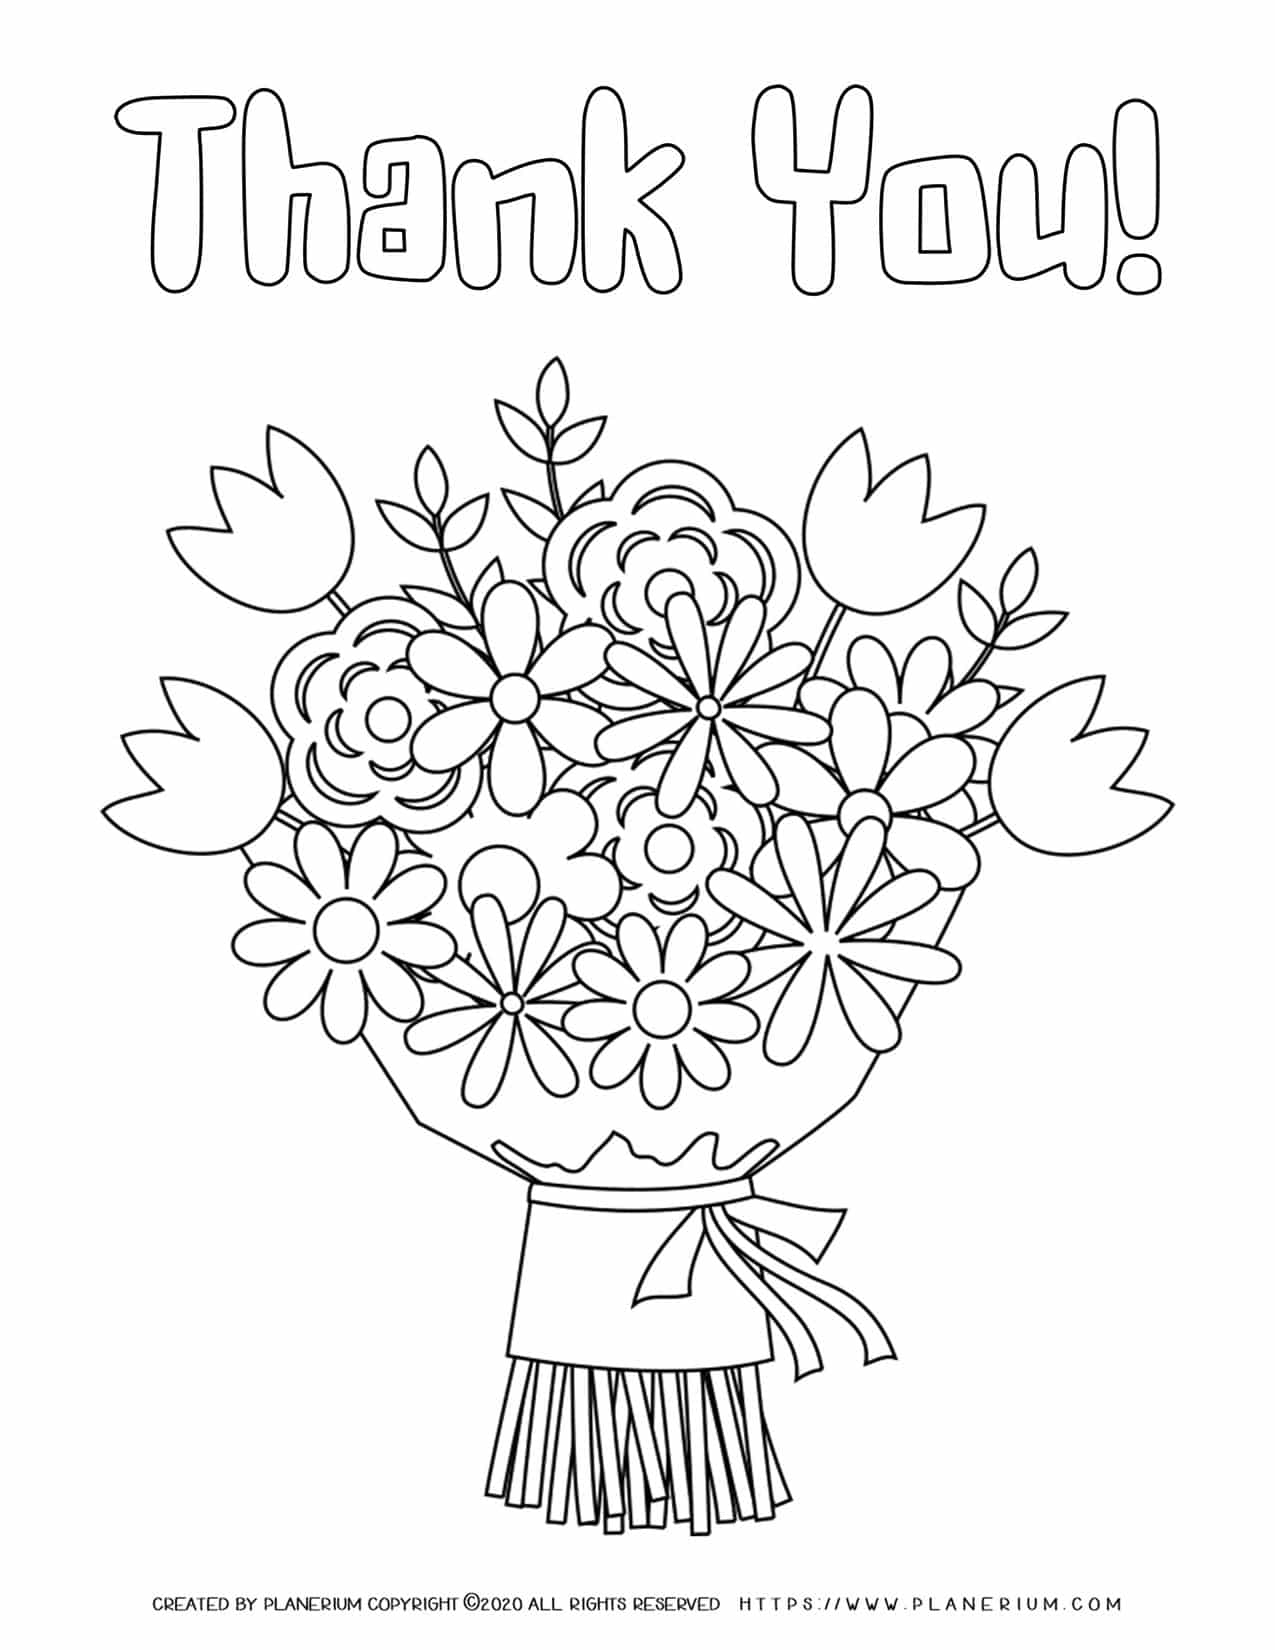 Thank You Coloring Page | Planerium